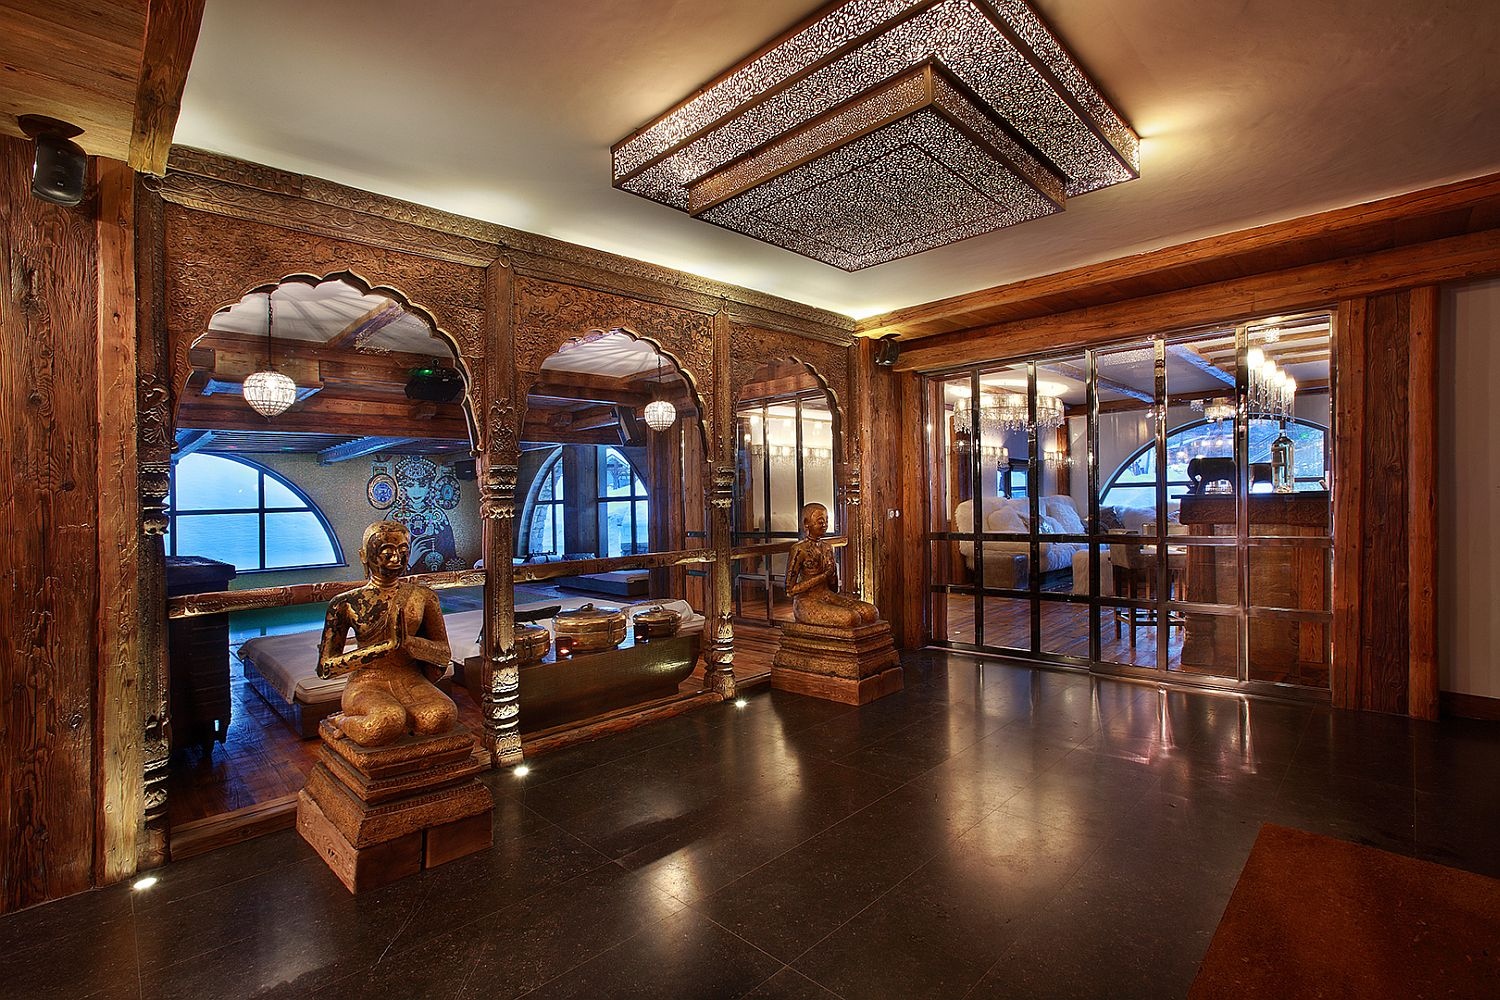 Asian ethnic motifs and carved wooden entryways at the luxury French chalet